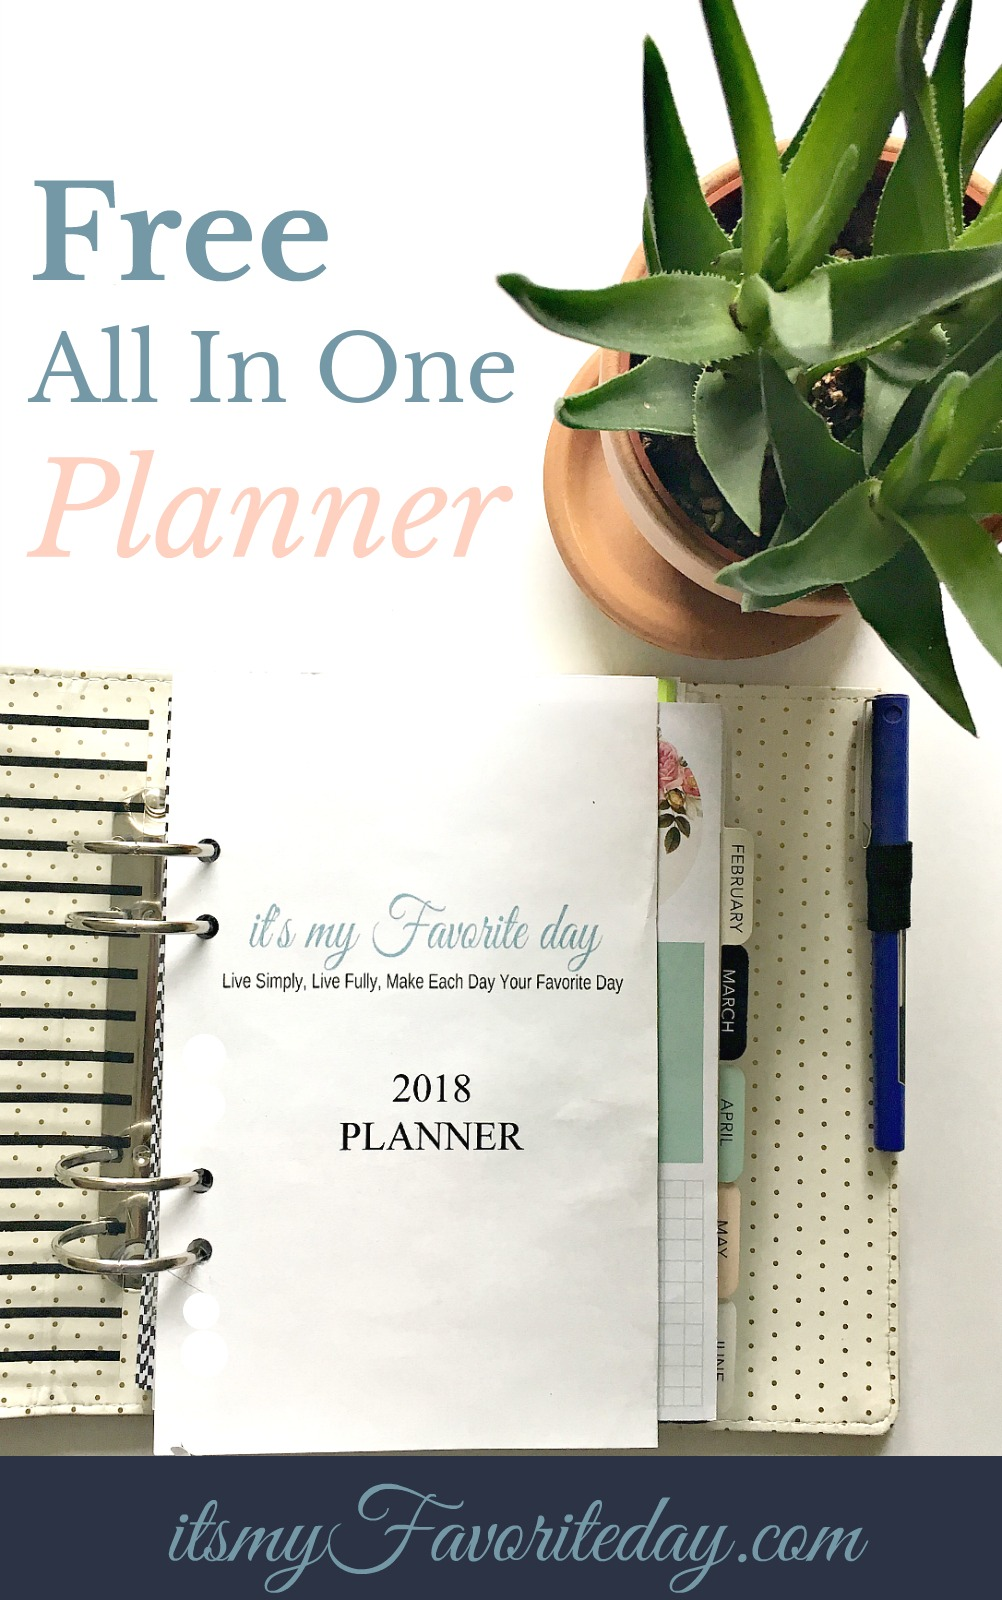 Wow, this is a great planner! Love the set up, exactly what I was looking for to keep organized. If you want a FREE printable planner, then you want to click this for sure.